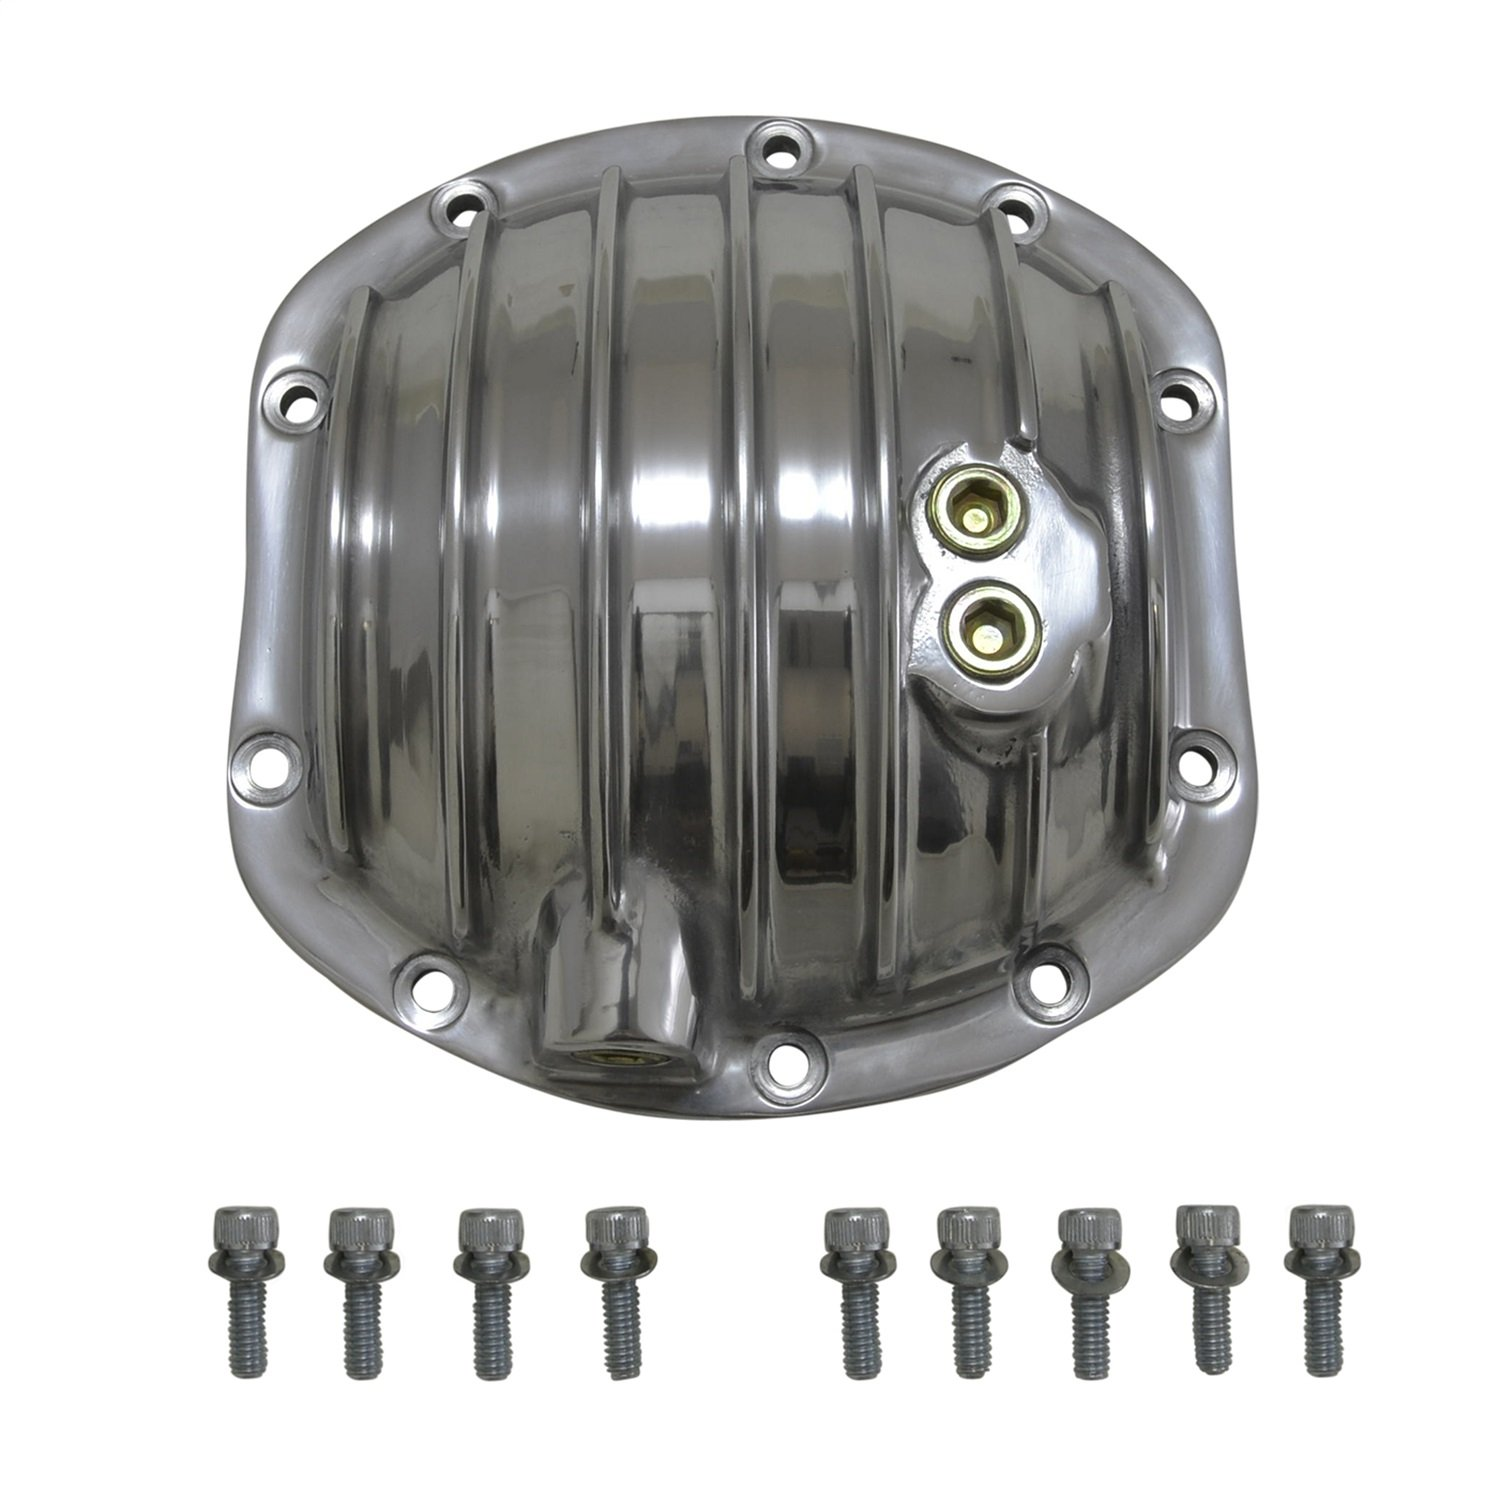 Yukon (YP C2-D30-STD) Polished Aluminum Replacement Cover for Dana 30 Standard Rotation Differential